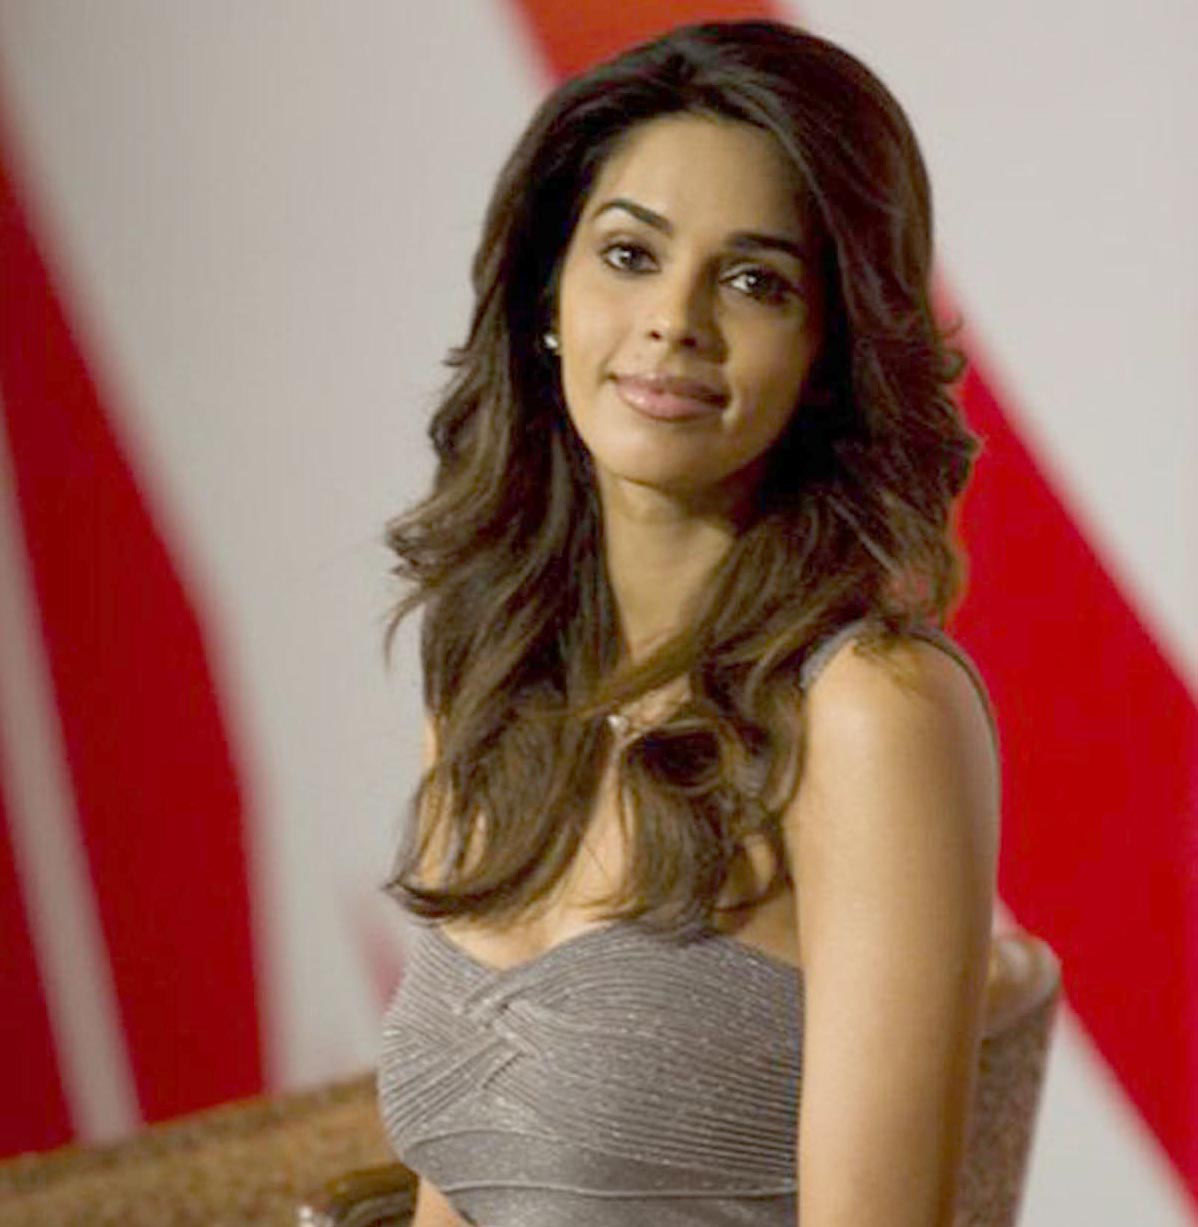 malika serawat hd wallpapers ~ actress hd wallpapers